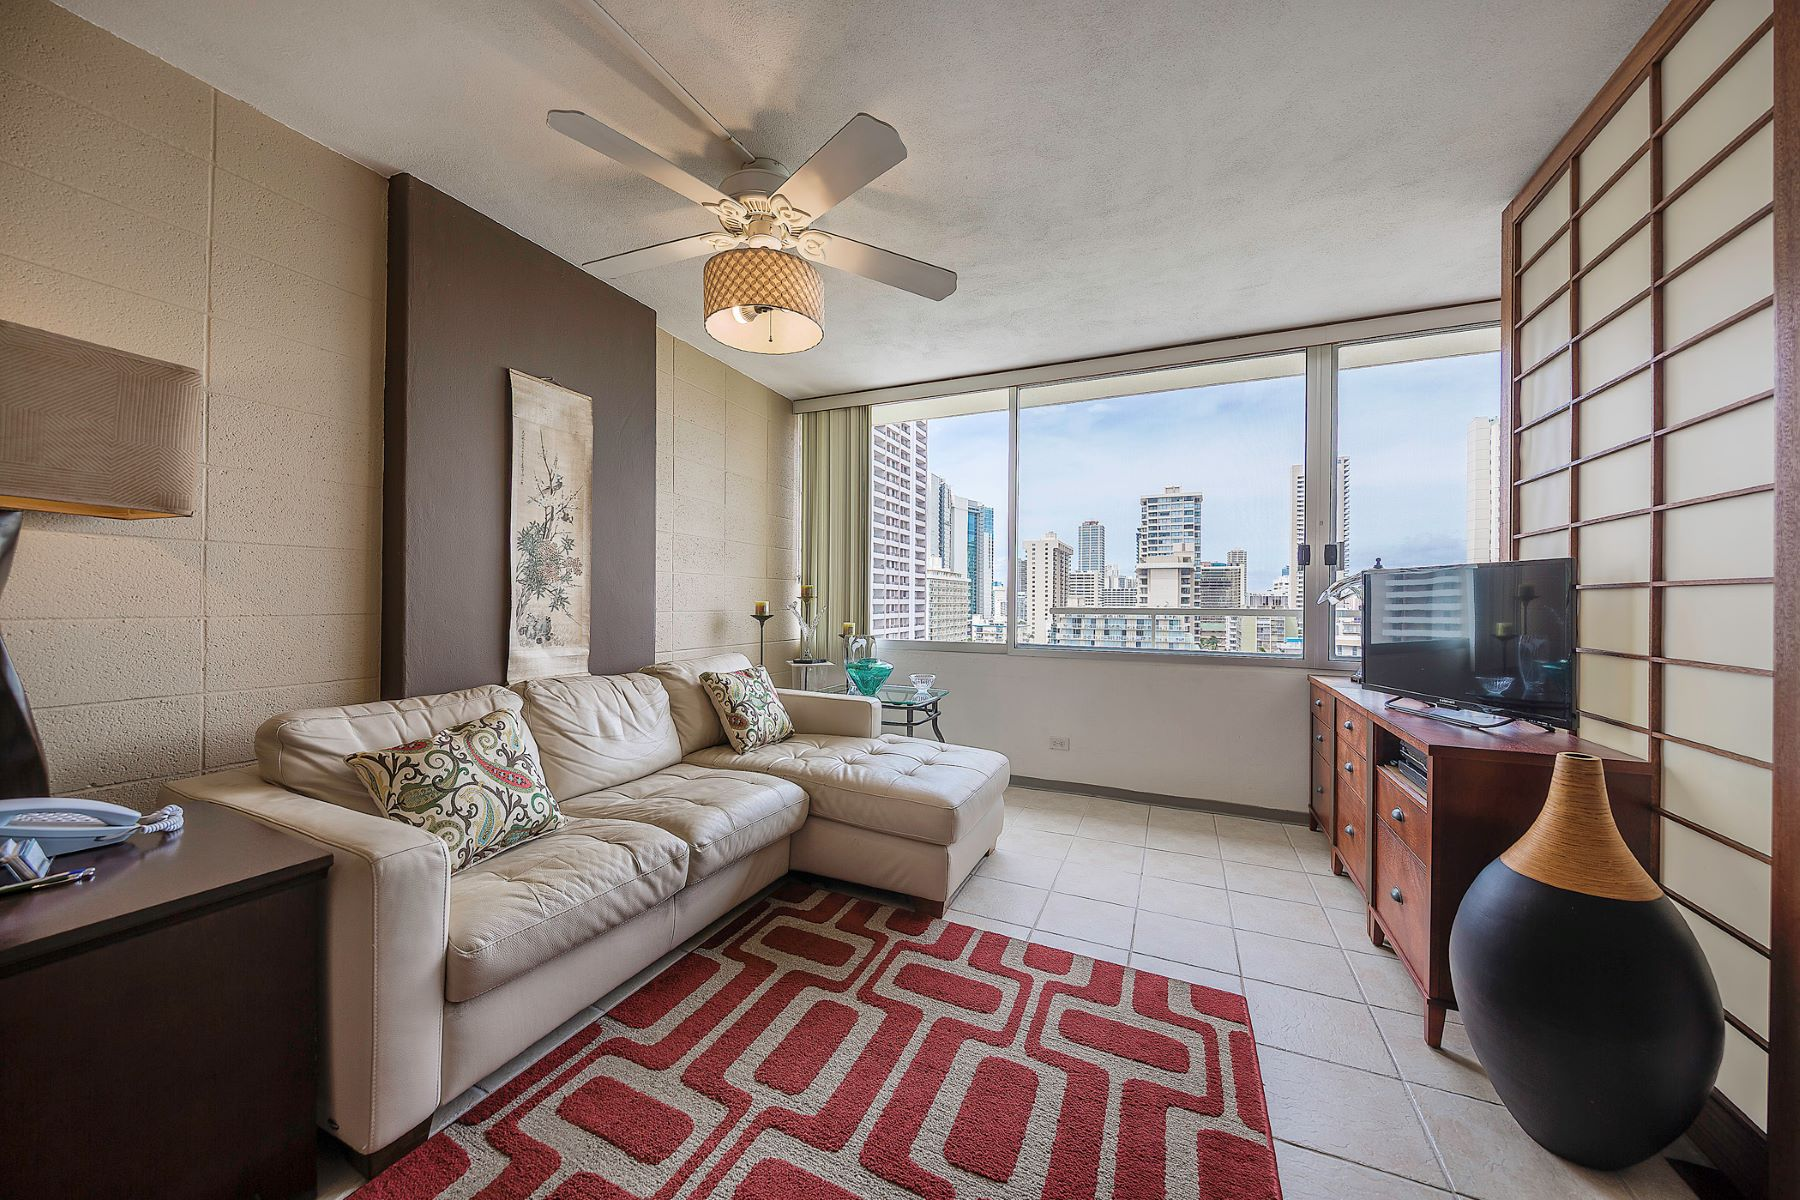 شقة بعمارة للـ Sale في Perfect Location 435 Seaside Ave #1404, Waikiki, Honolulu, Hawaii, 96815 United States